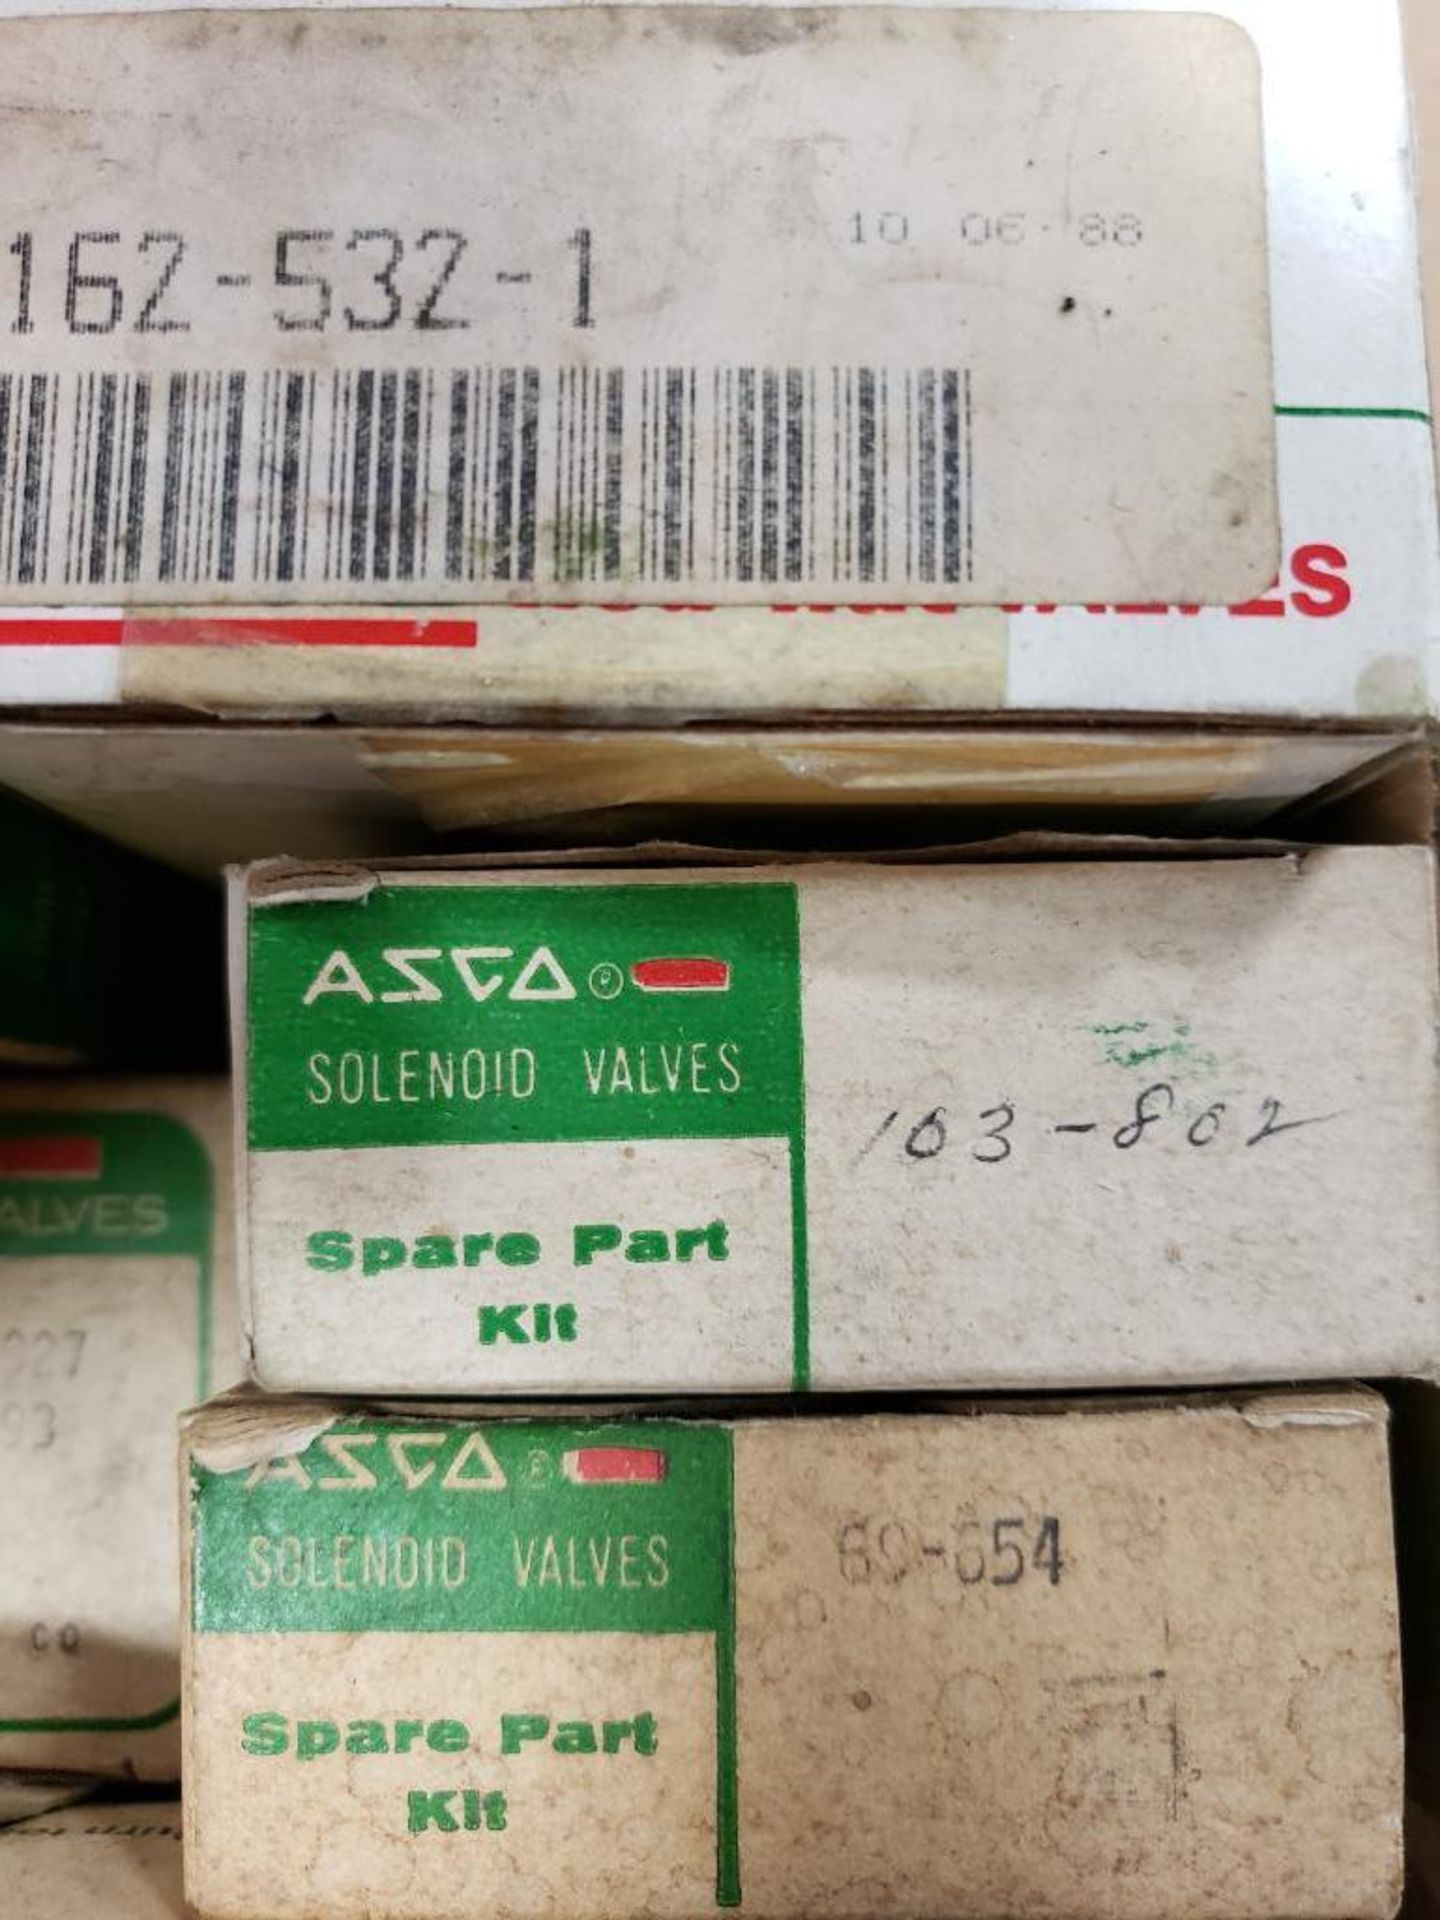 Assorted solenoid valves, and repair kits. Asco. - Image 7 of 15